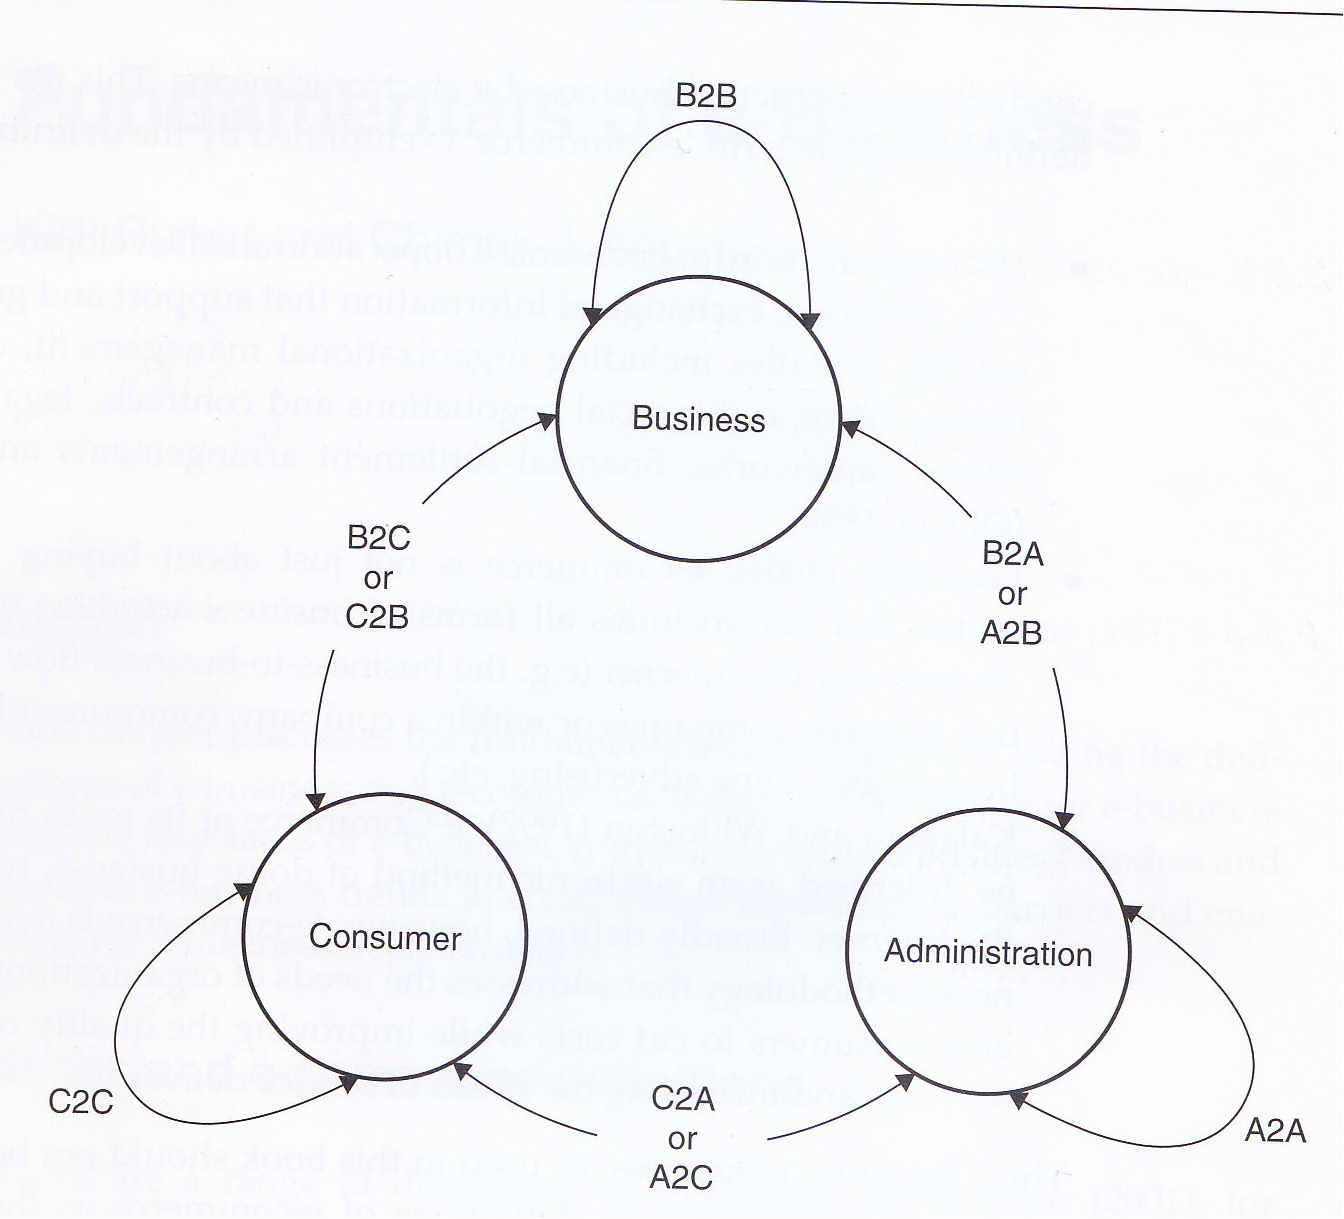 Administration-to-Administration (A2A)